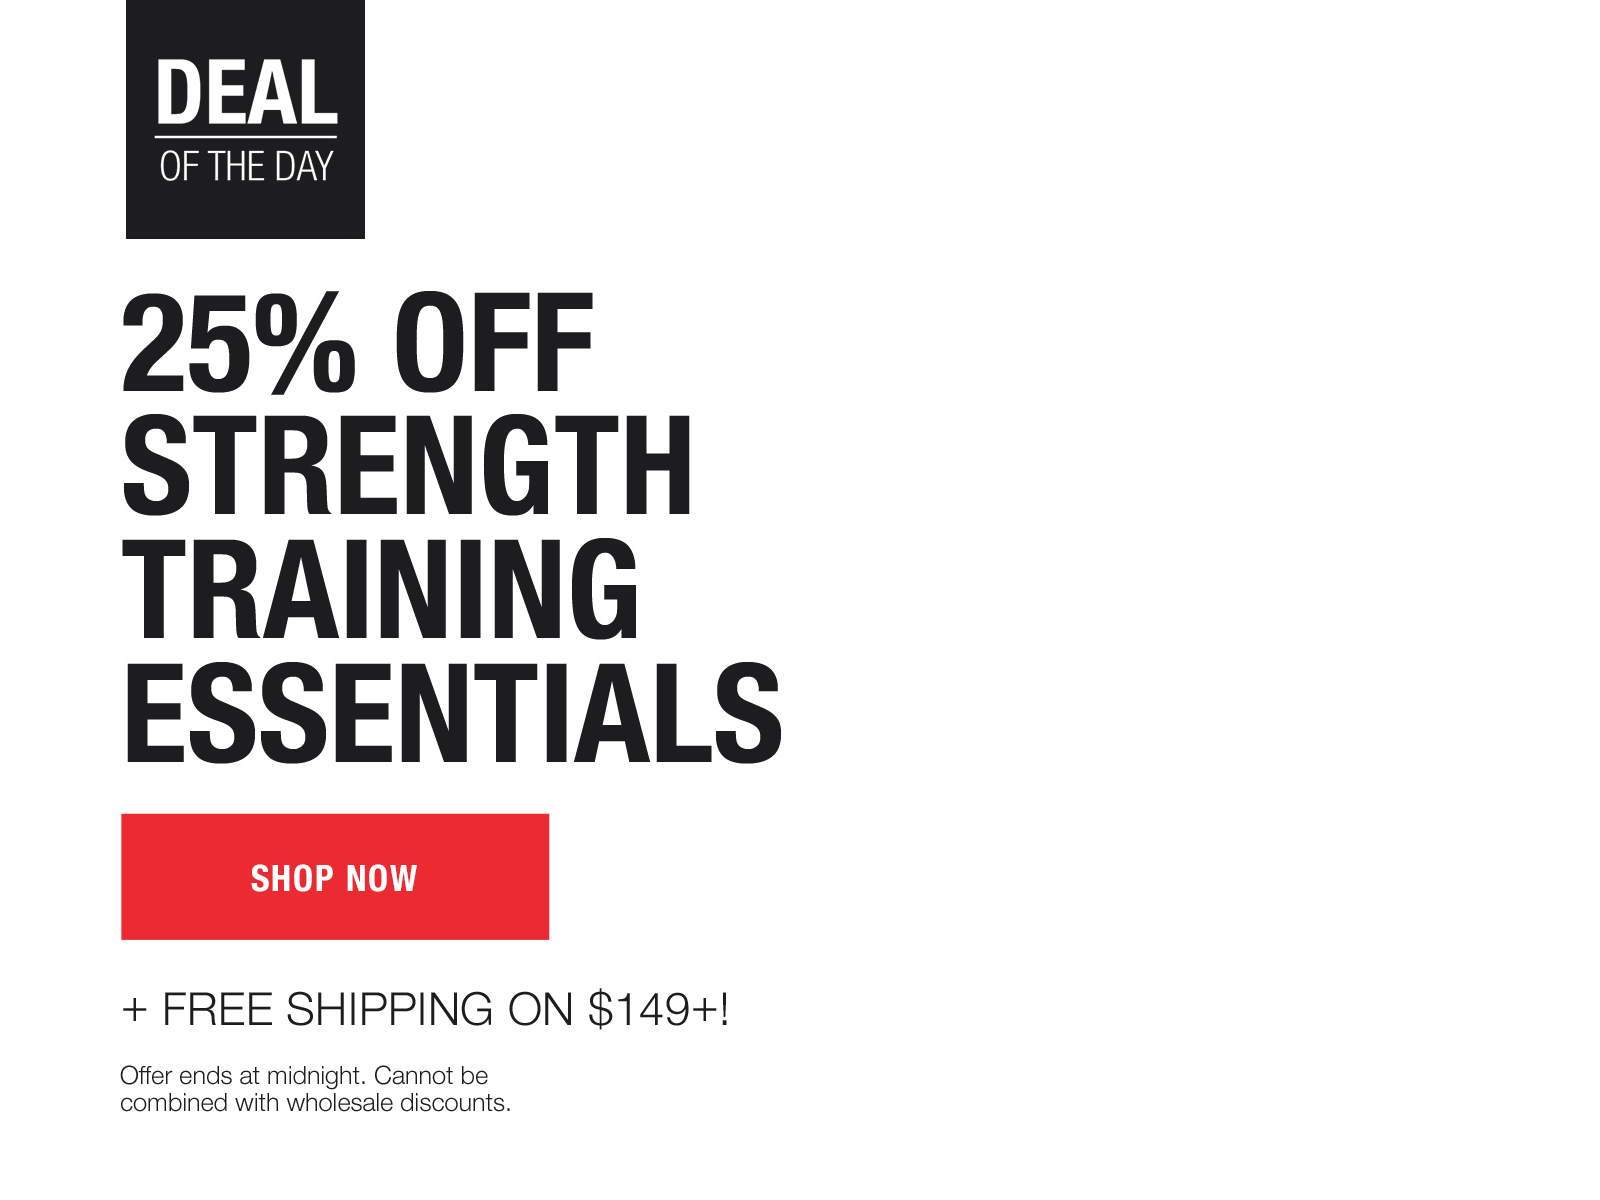 today only: 25% off strength training